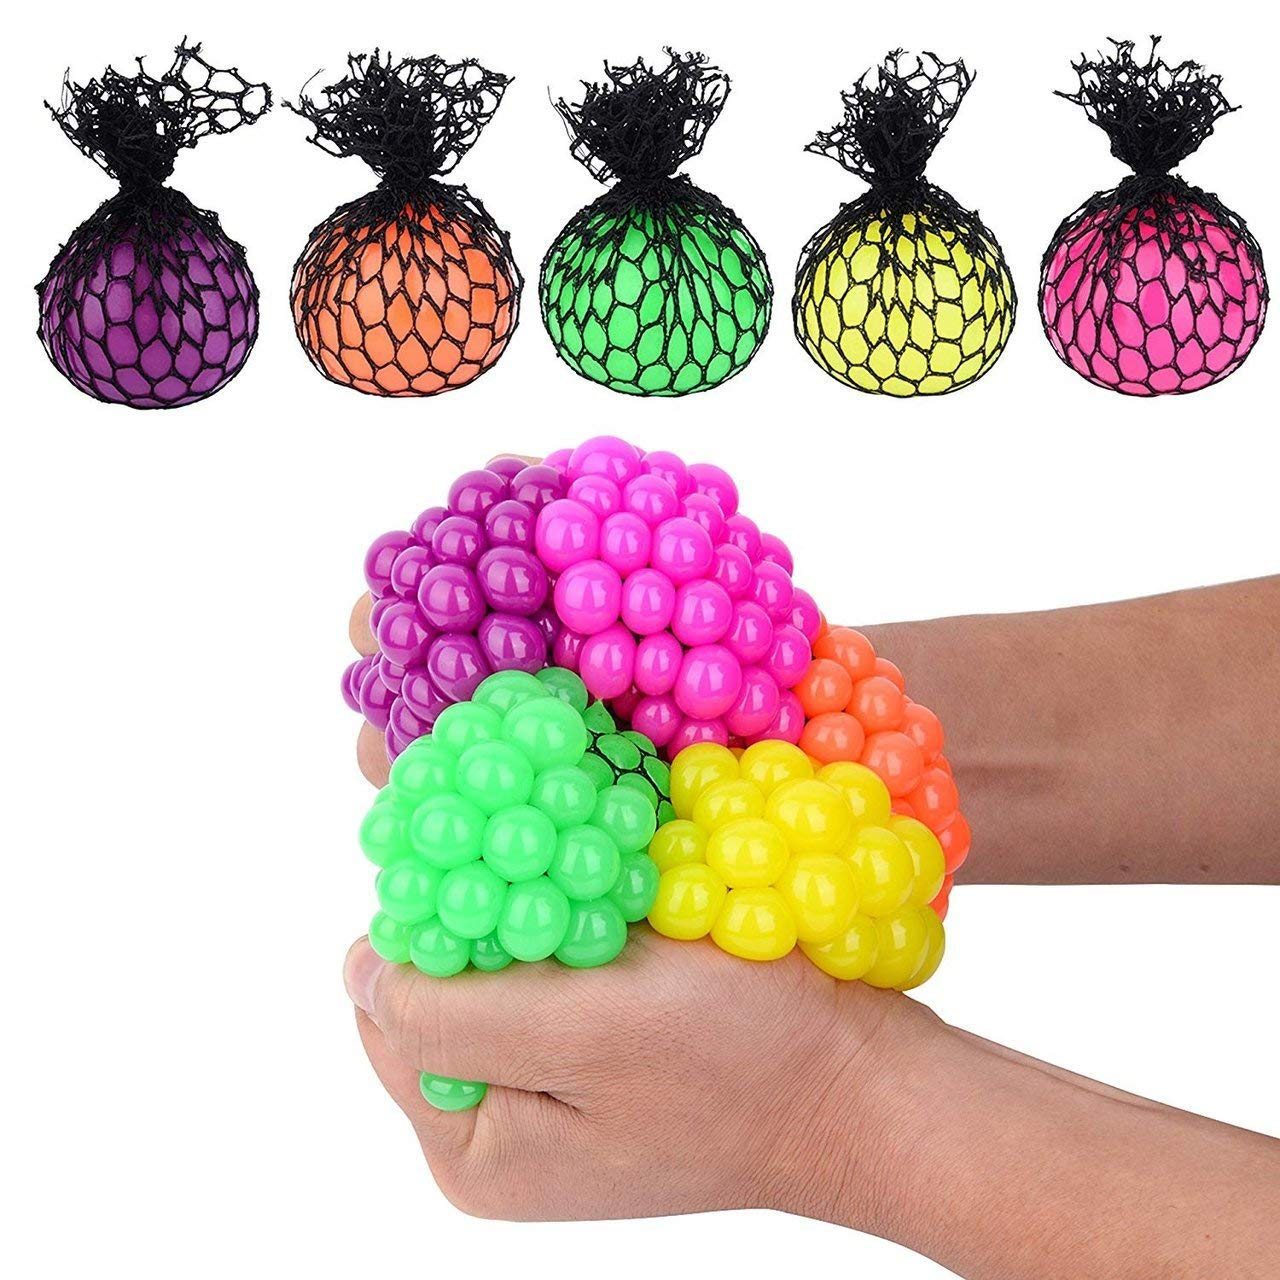 Totem World 36 Colorful Sewn Mesh Stress Balls - 2.4'' Squishy Fidget Toy Perfect for Kids and Adults Materials for Lasting Use - Squeeze Balls for Anxiety and Concentration - Great Party Favors by Totem World (Image #5)